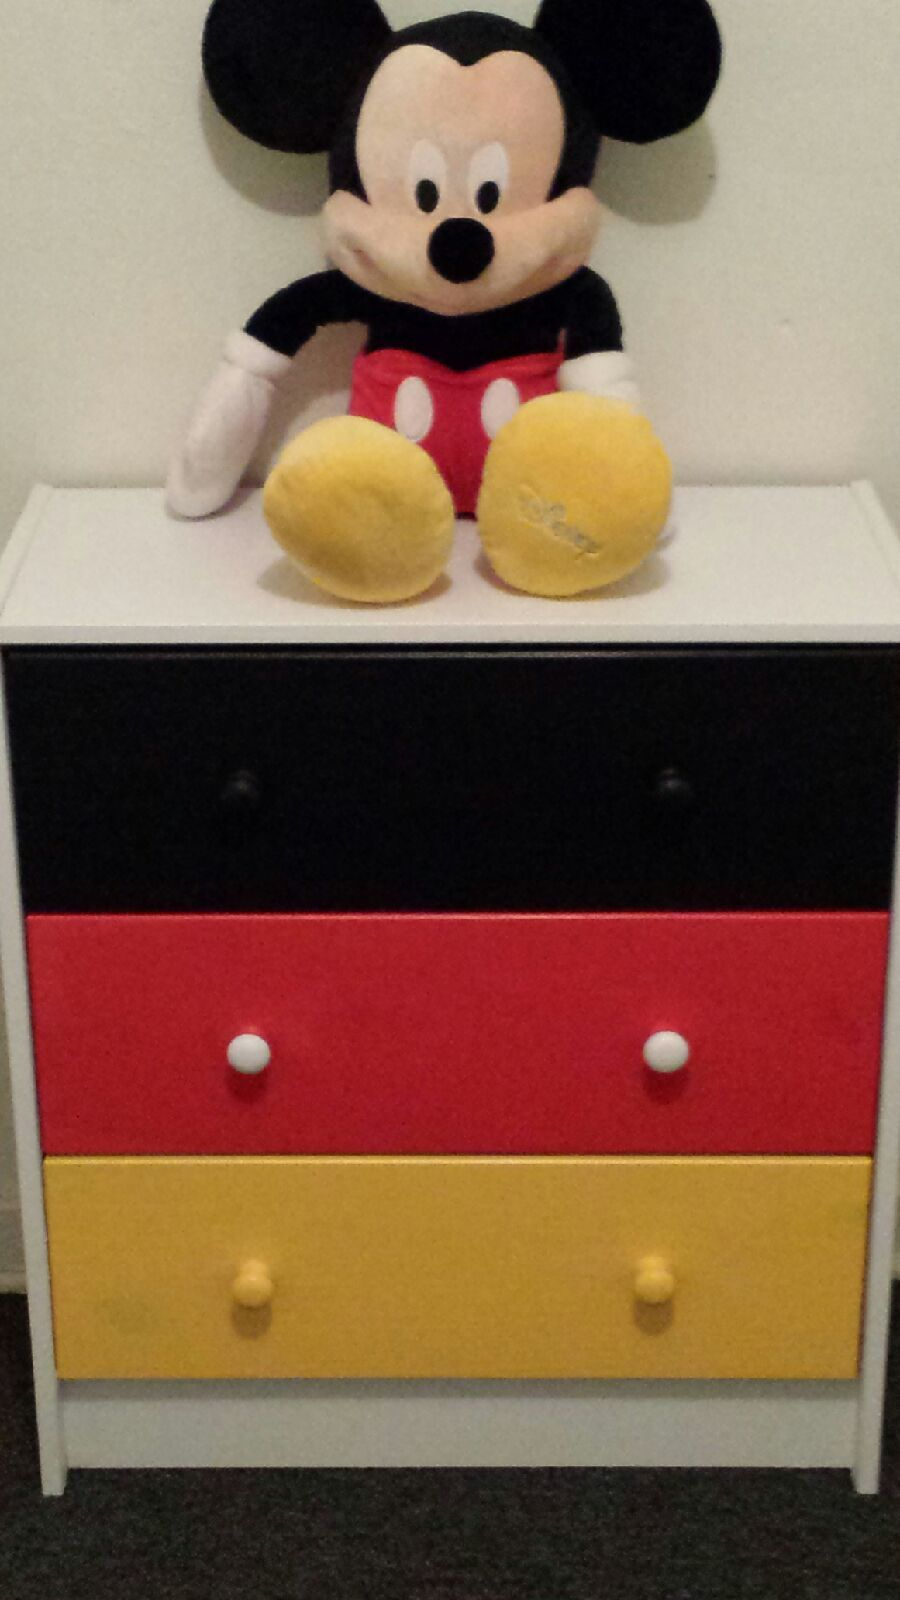 How To Safely Remove Baby Mouse From Bedroom: Cup Of Mulatto: Mickey Mouse-inspired Dresser